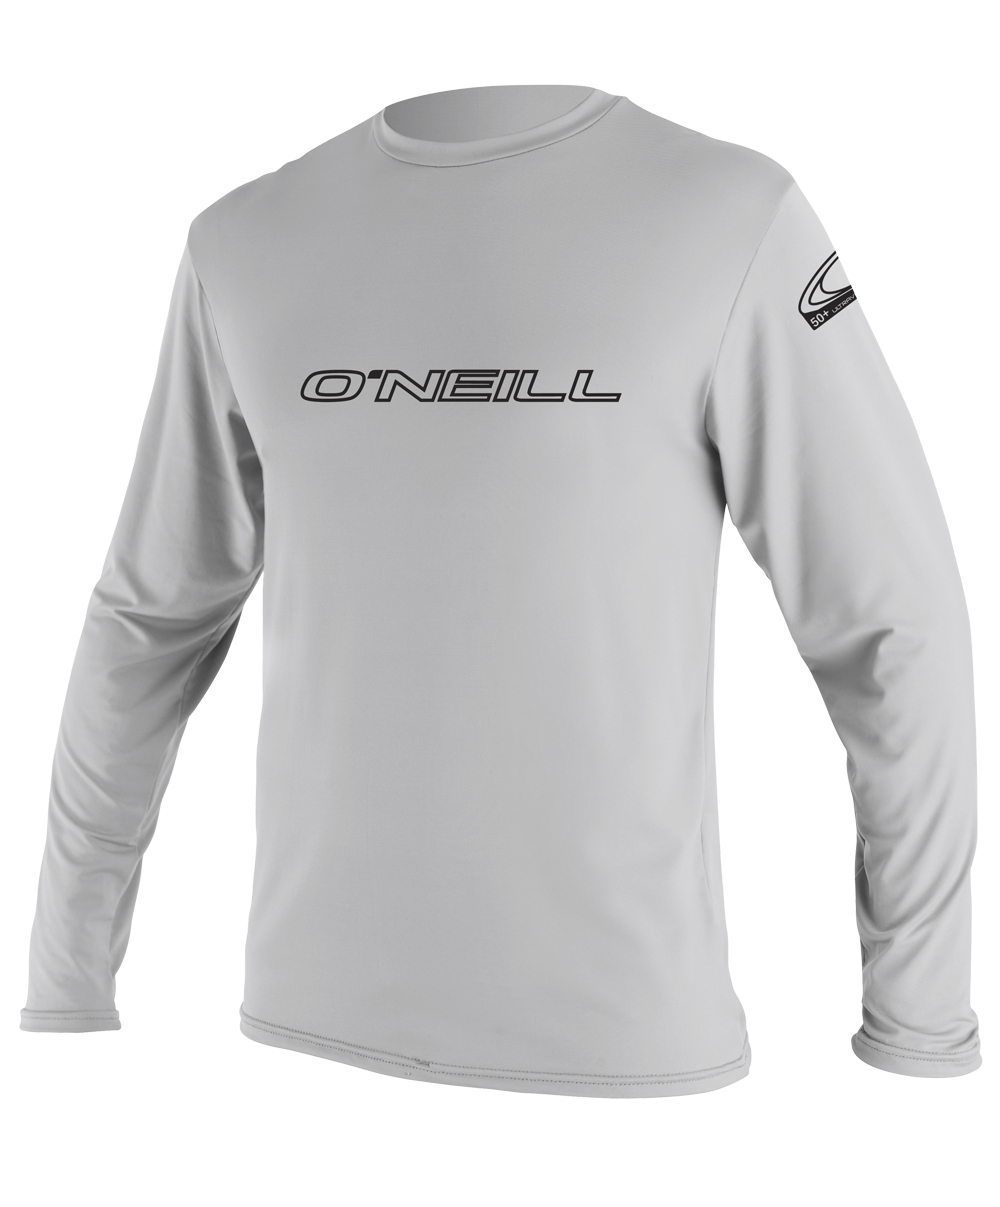 O'Neill Basic Skins Long Sleeve Rash Tee Men's Rashguard 50+ UV Protection  - Light Grey